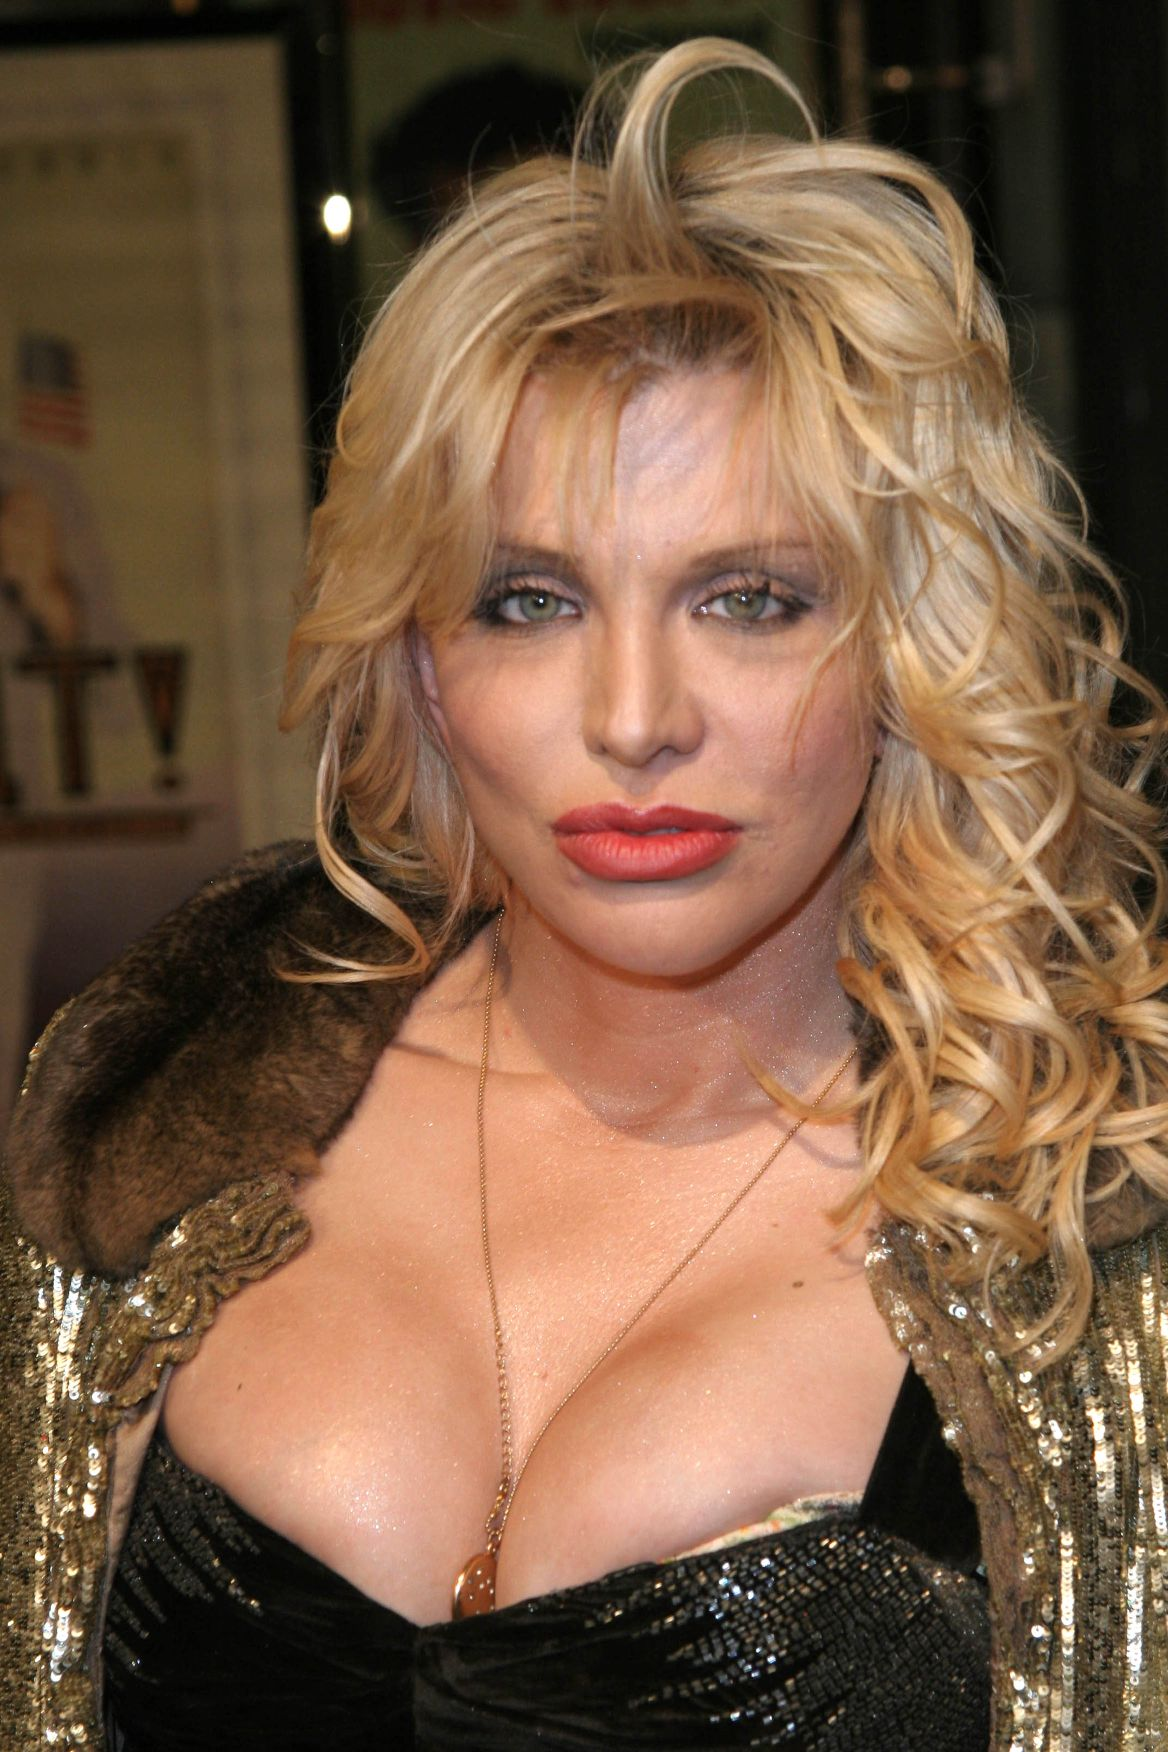 courtney love gold digger